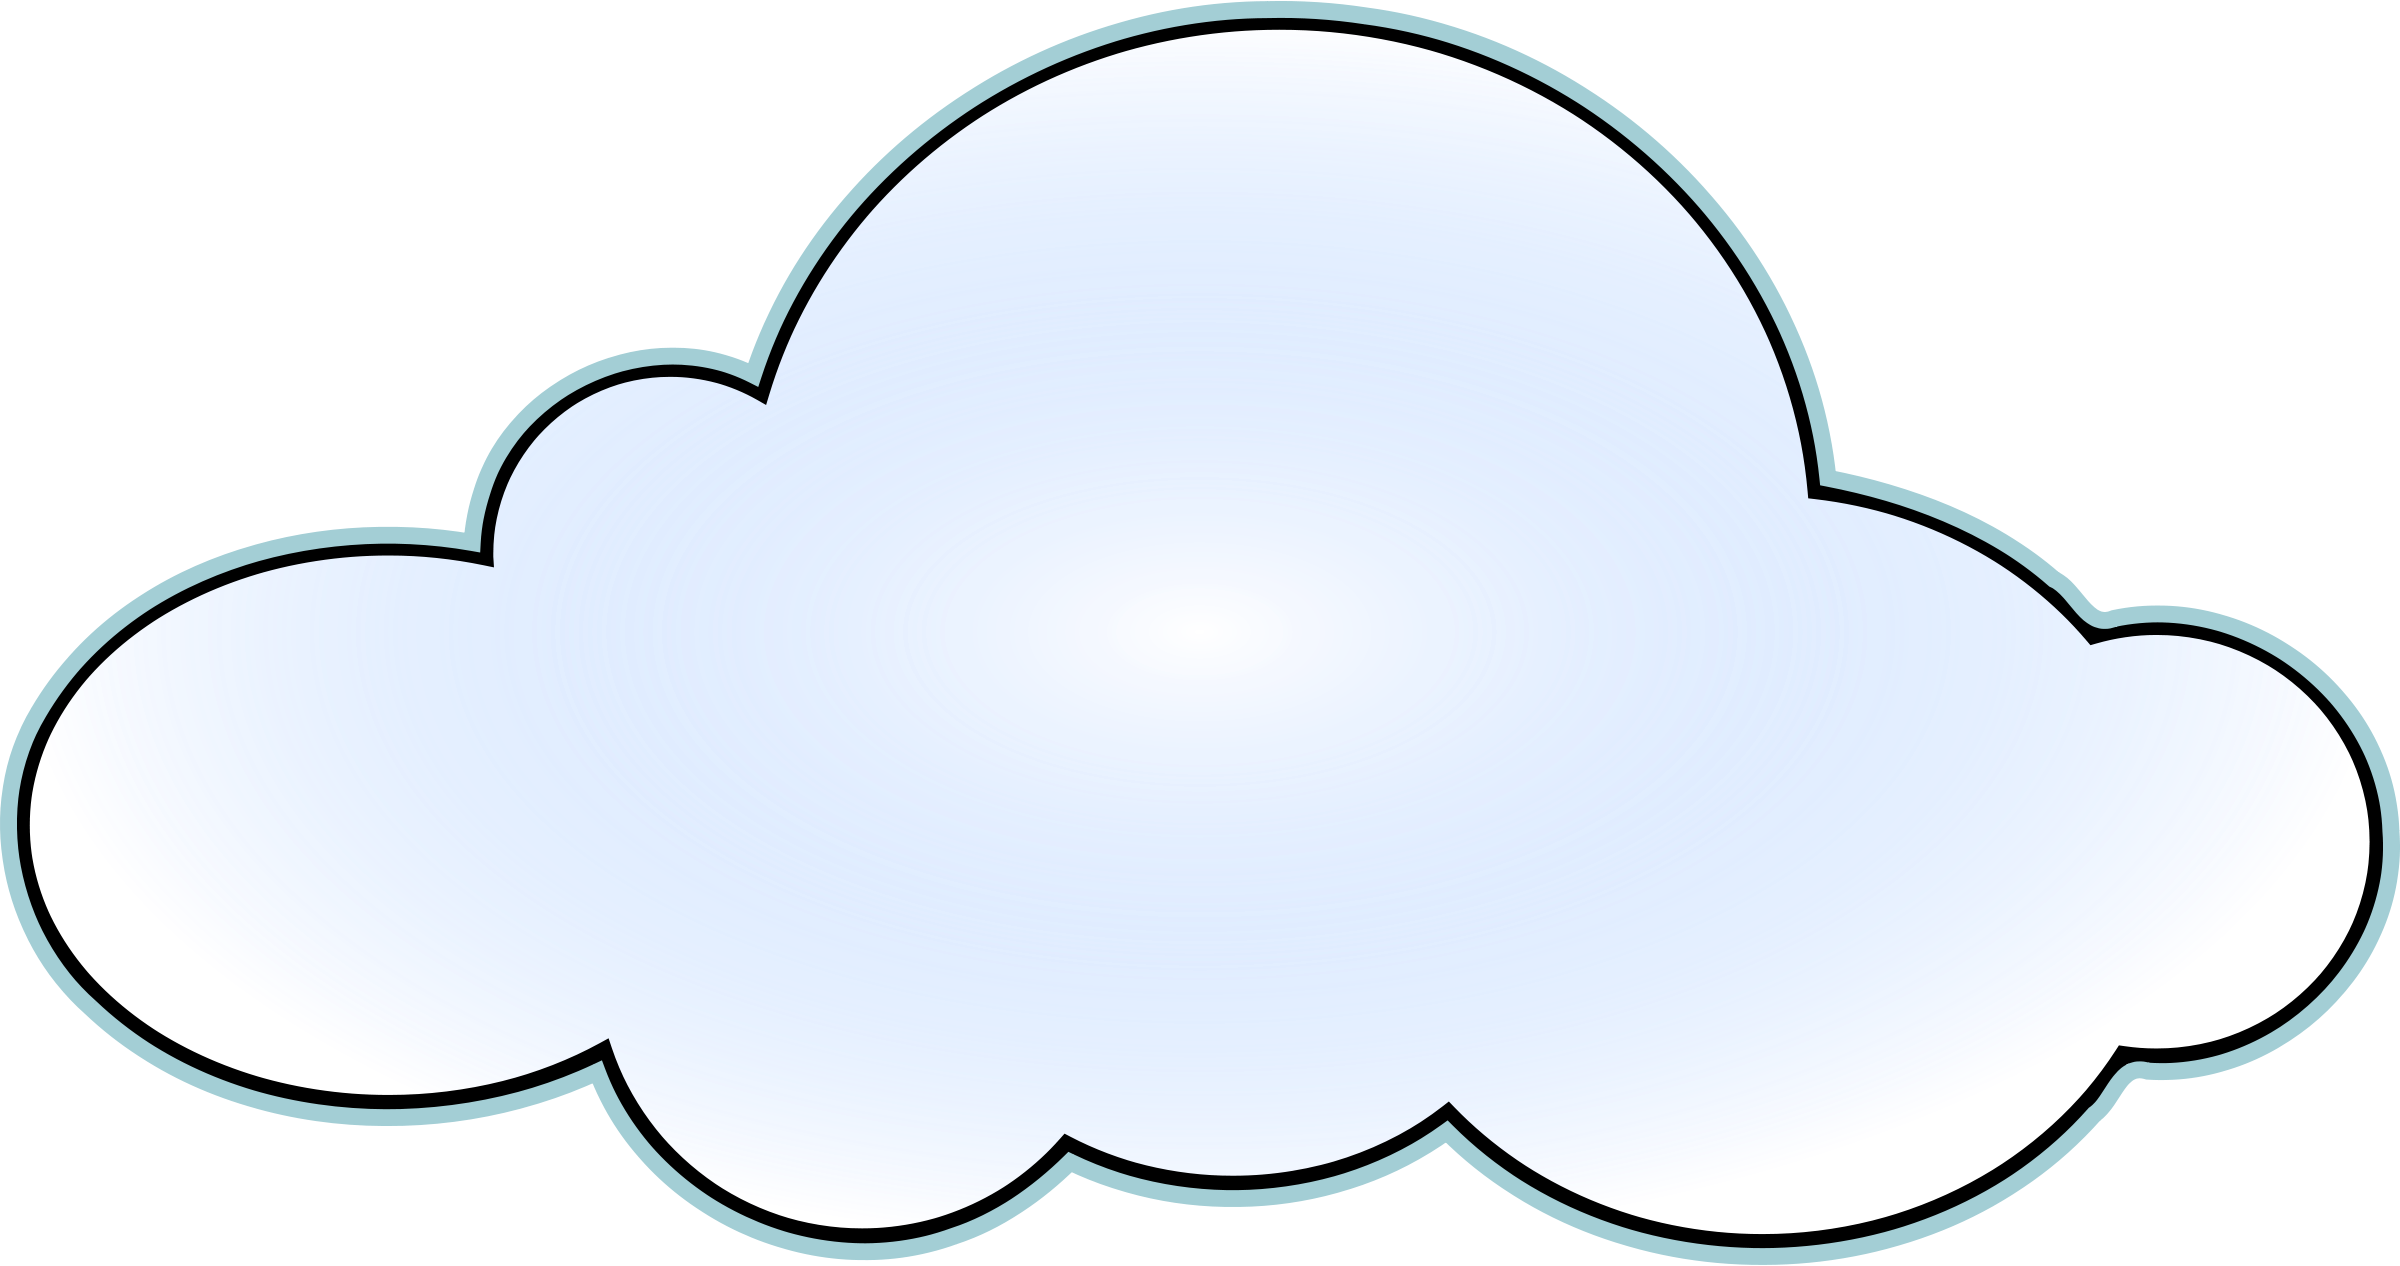 Cloud clipart transparent png free library Cloud Clipart - Free Transparent PNG Logos png free library